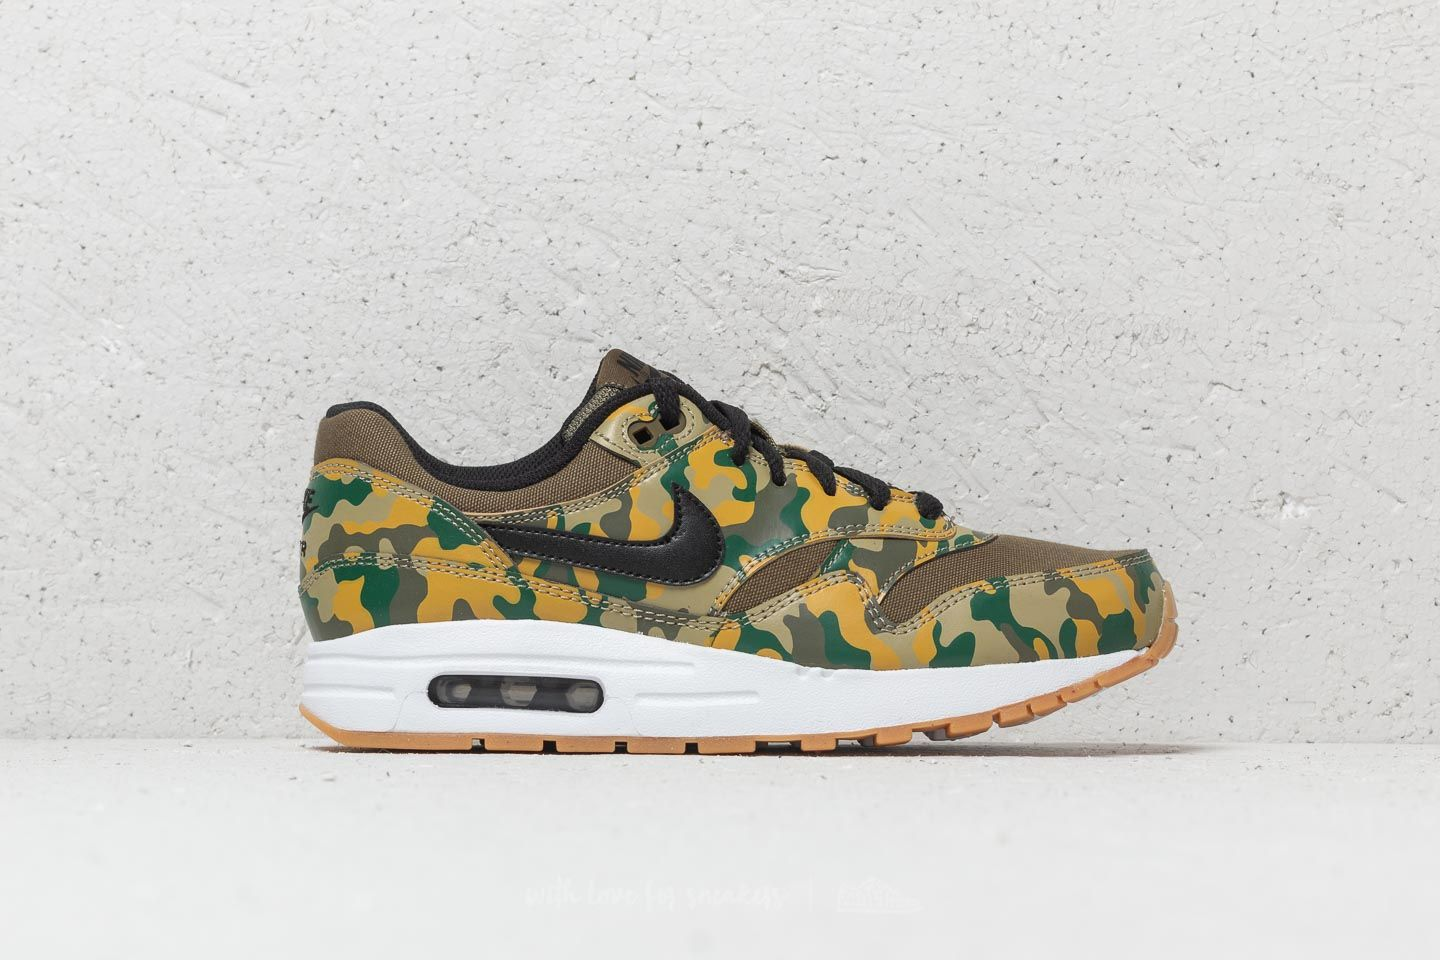 445d0d4a96c6 Nike Air Max 1 Print (GS) Medium Olive  Black at a great price